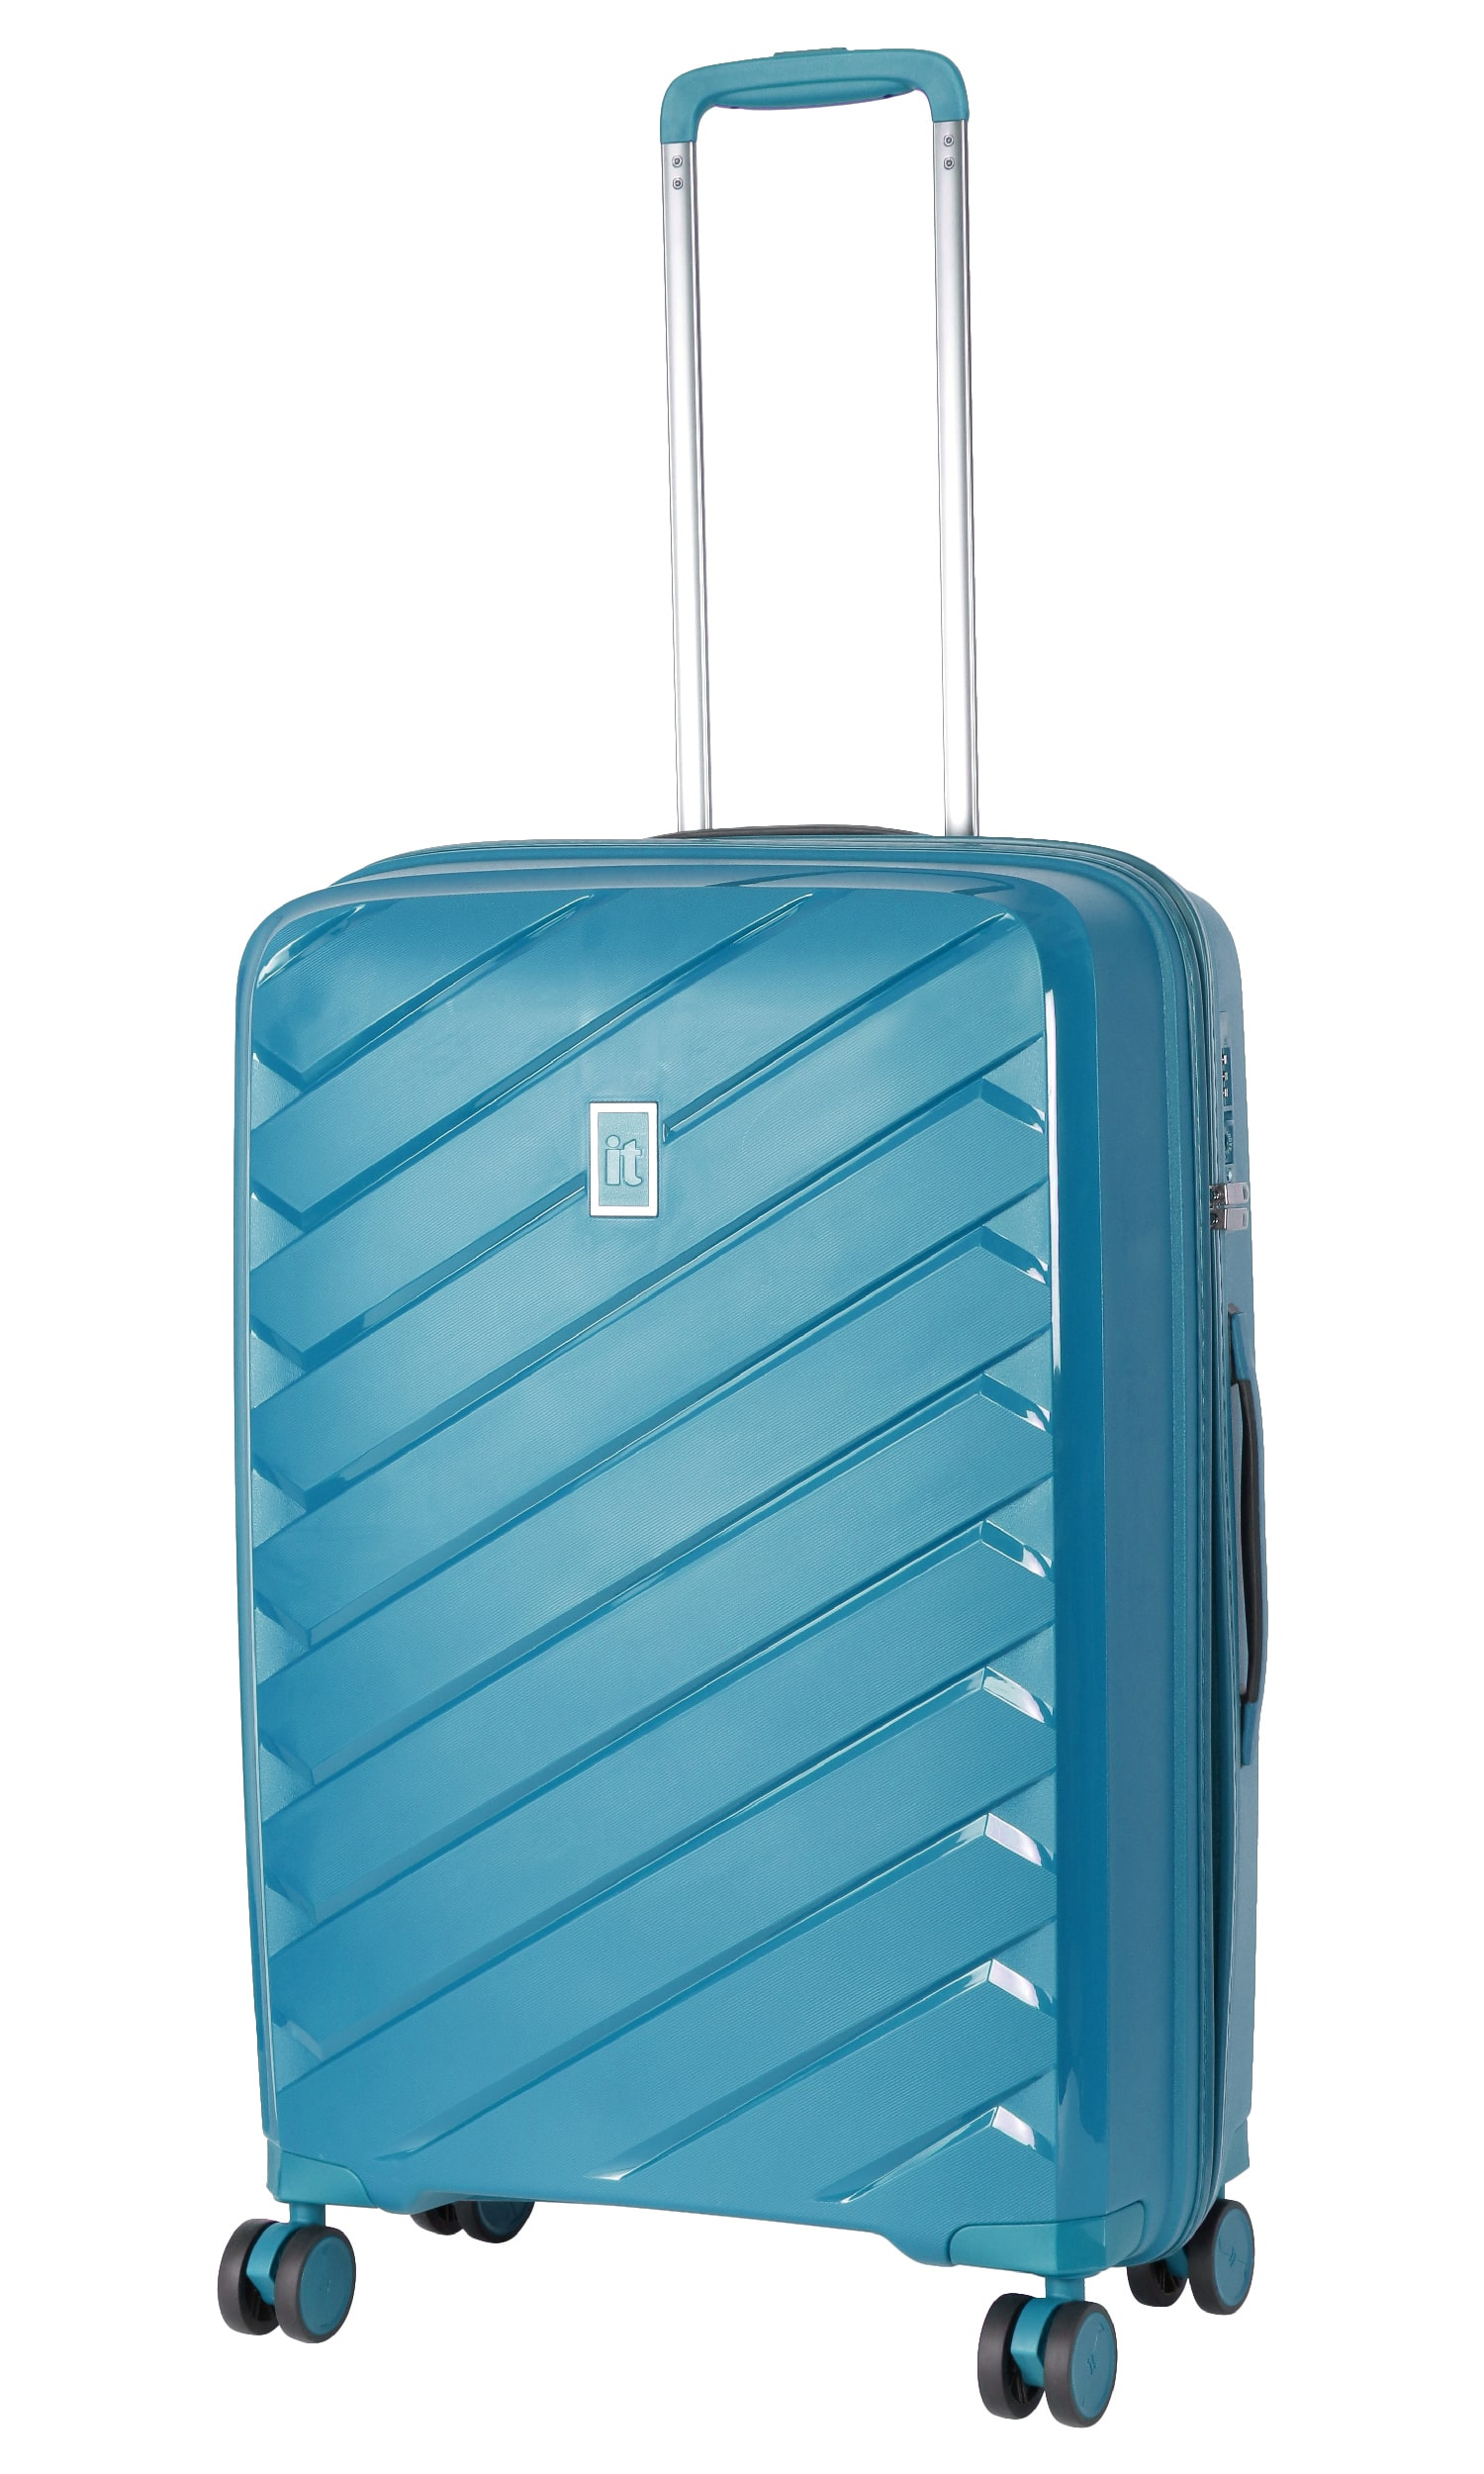 https://assetscdn1.paytm.com/images/catalog/product/B/BA/BAGIT-LUGGAGE-PPL-T1082484238F893D/0..jpg